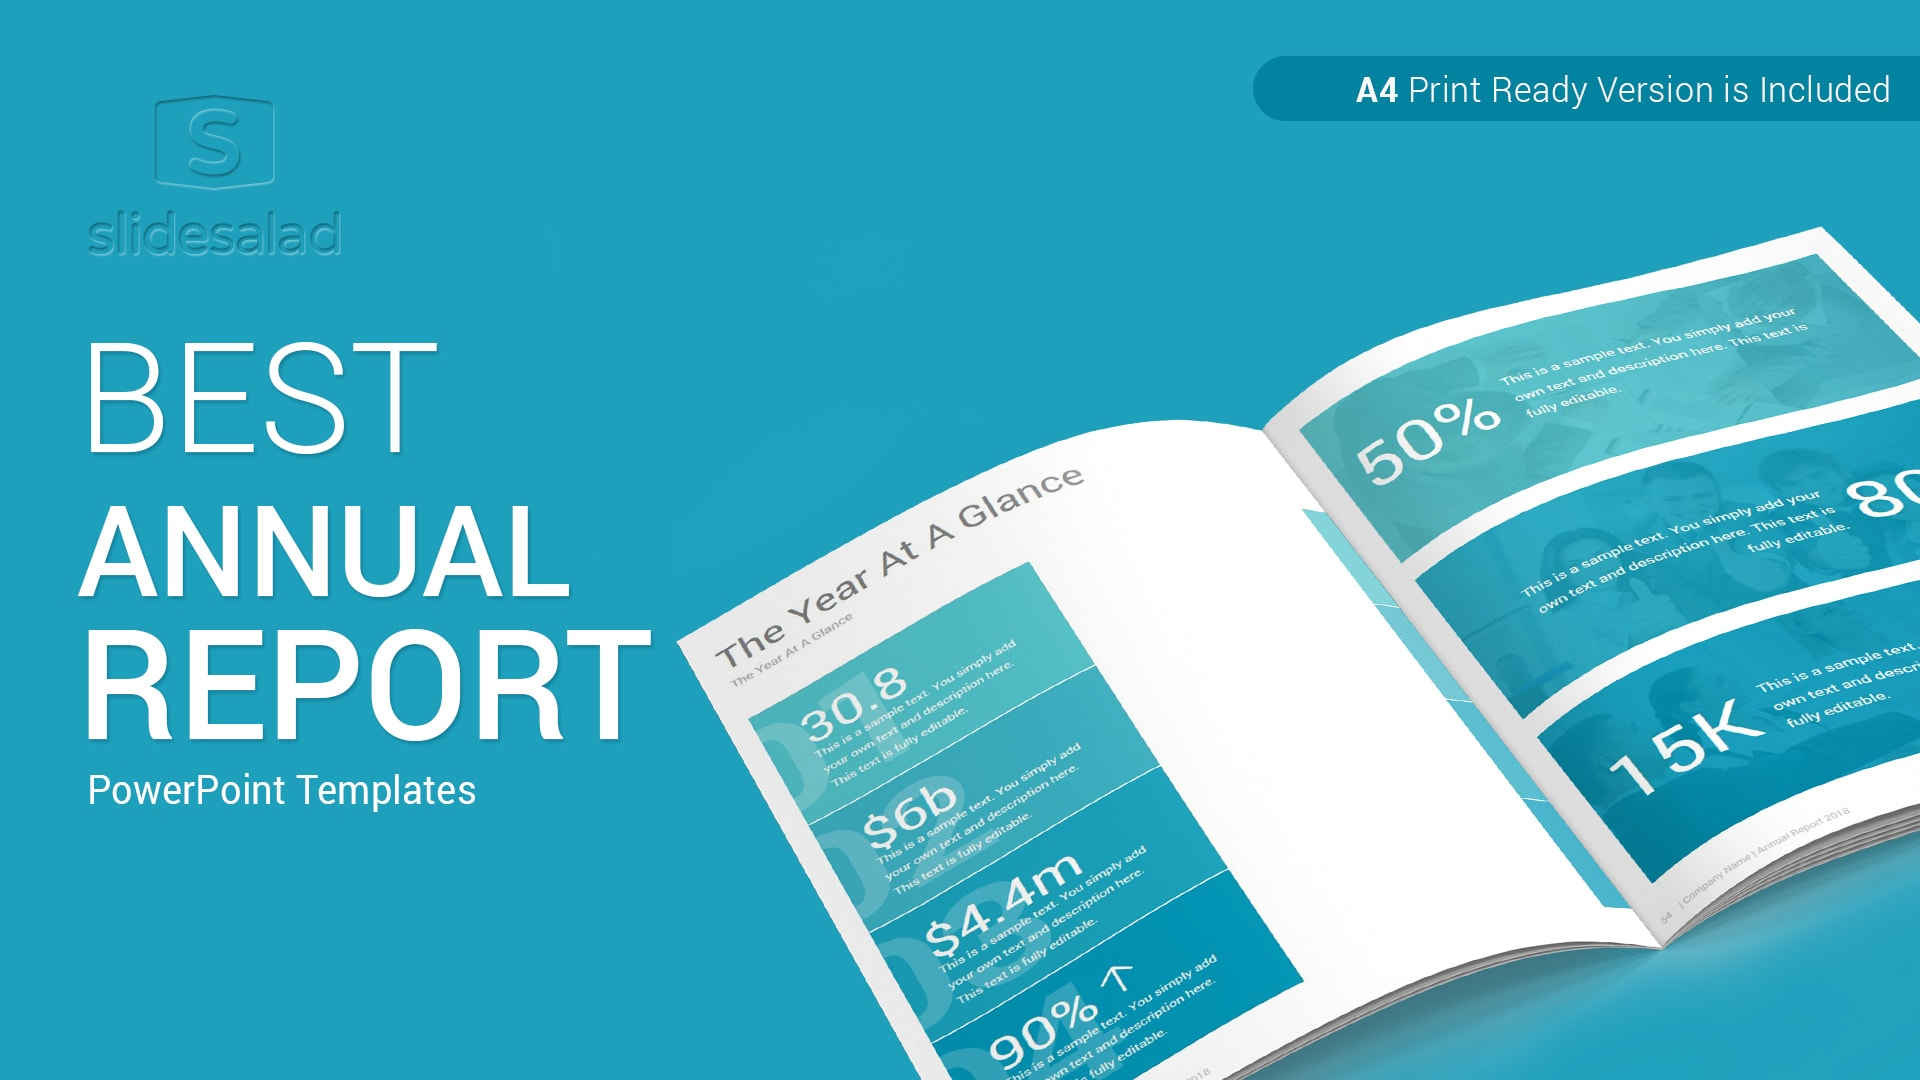 Best Annual Report PowerPoint Presentation Templates – Amazing Modern PowerPoint Themes